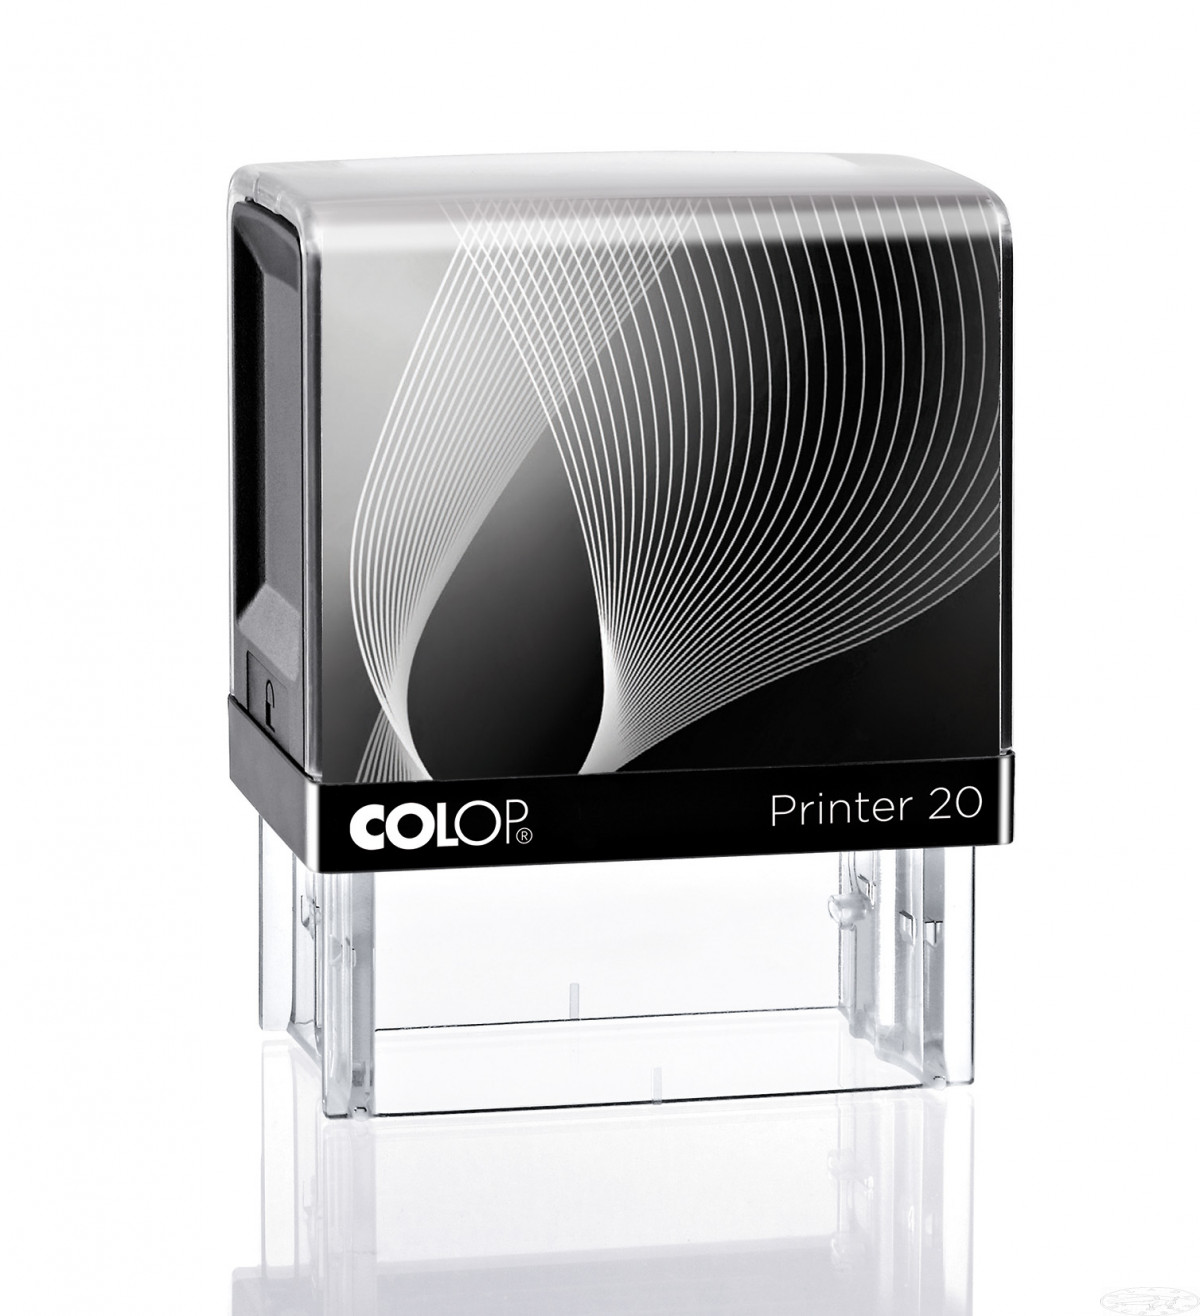 Colop Self inking Printer 20